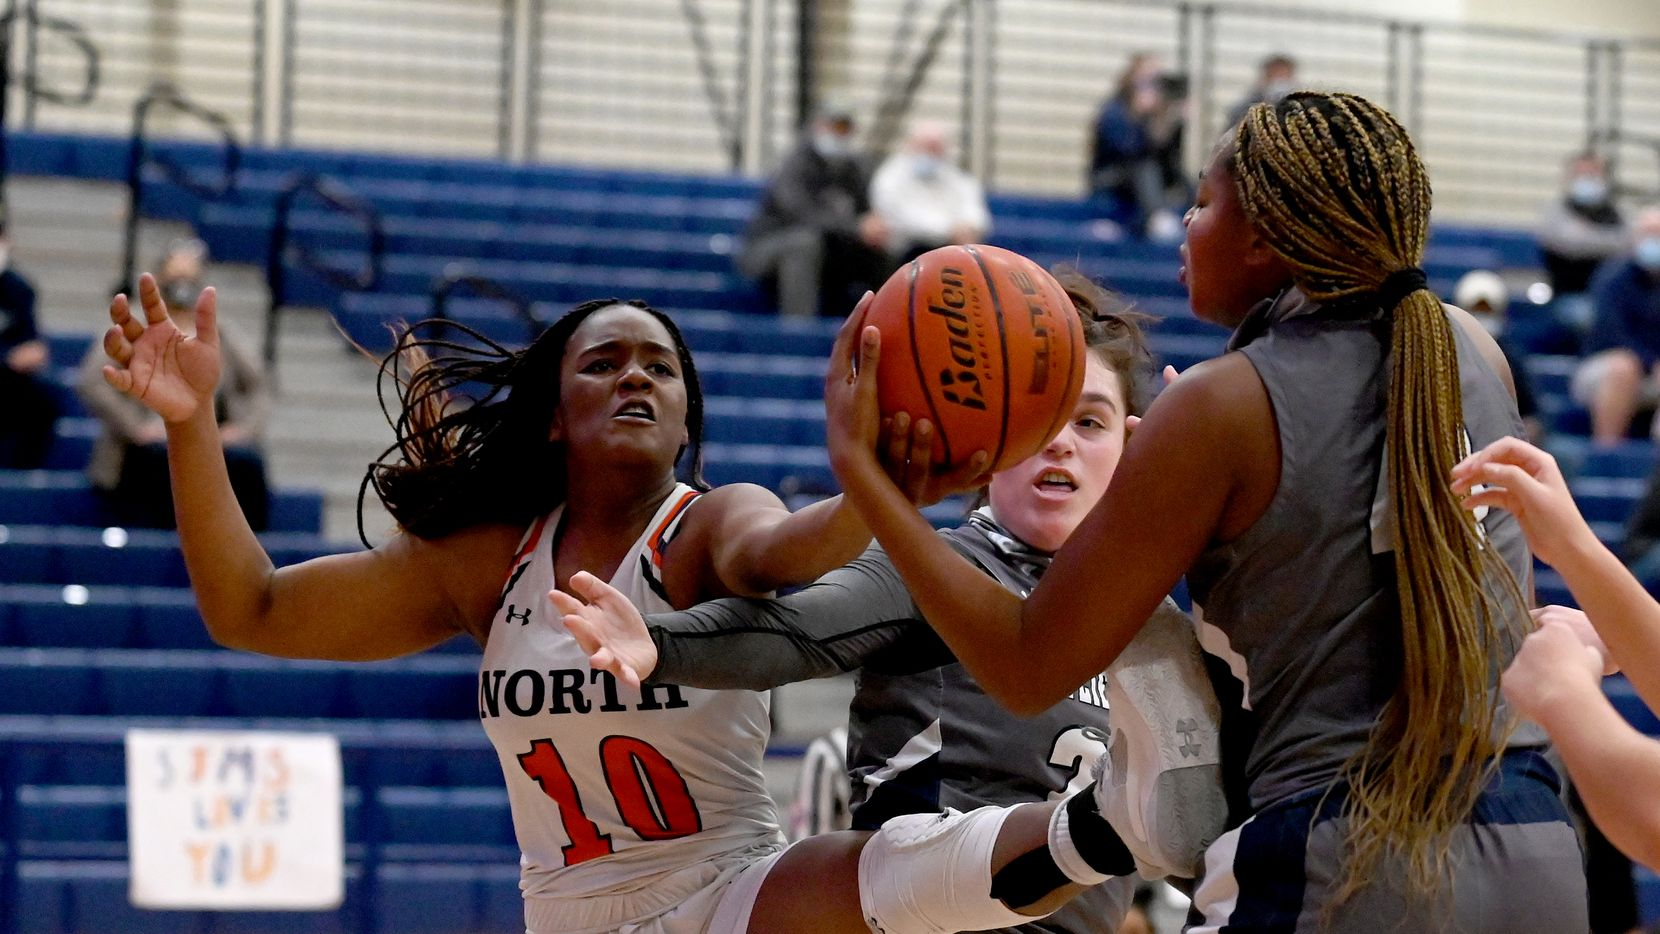 McKinney North's Kaelyn Hamilton (10) goes after a rebound with Wylie East's Kiley Hicks, center, and Akasha Davis in the first half during a girls basketball game between Wylie East and McKinney North, Tuesday, Feb. 2, 2020, in McKinney, Texas.